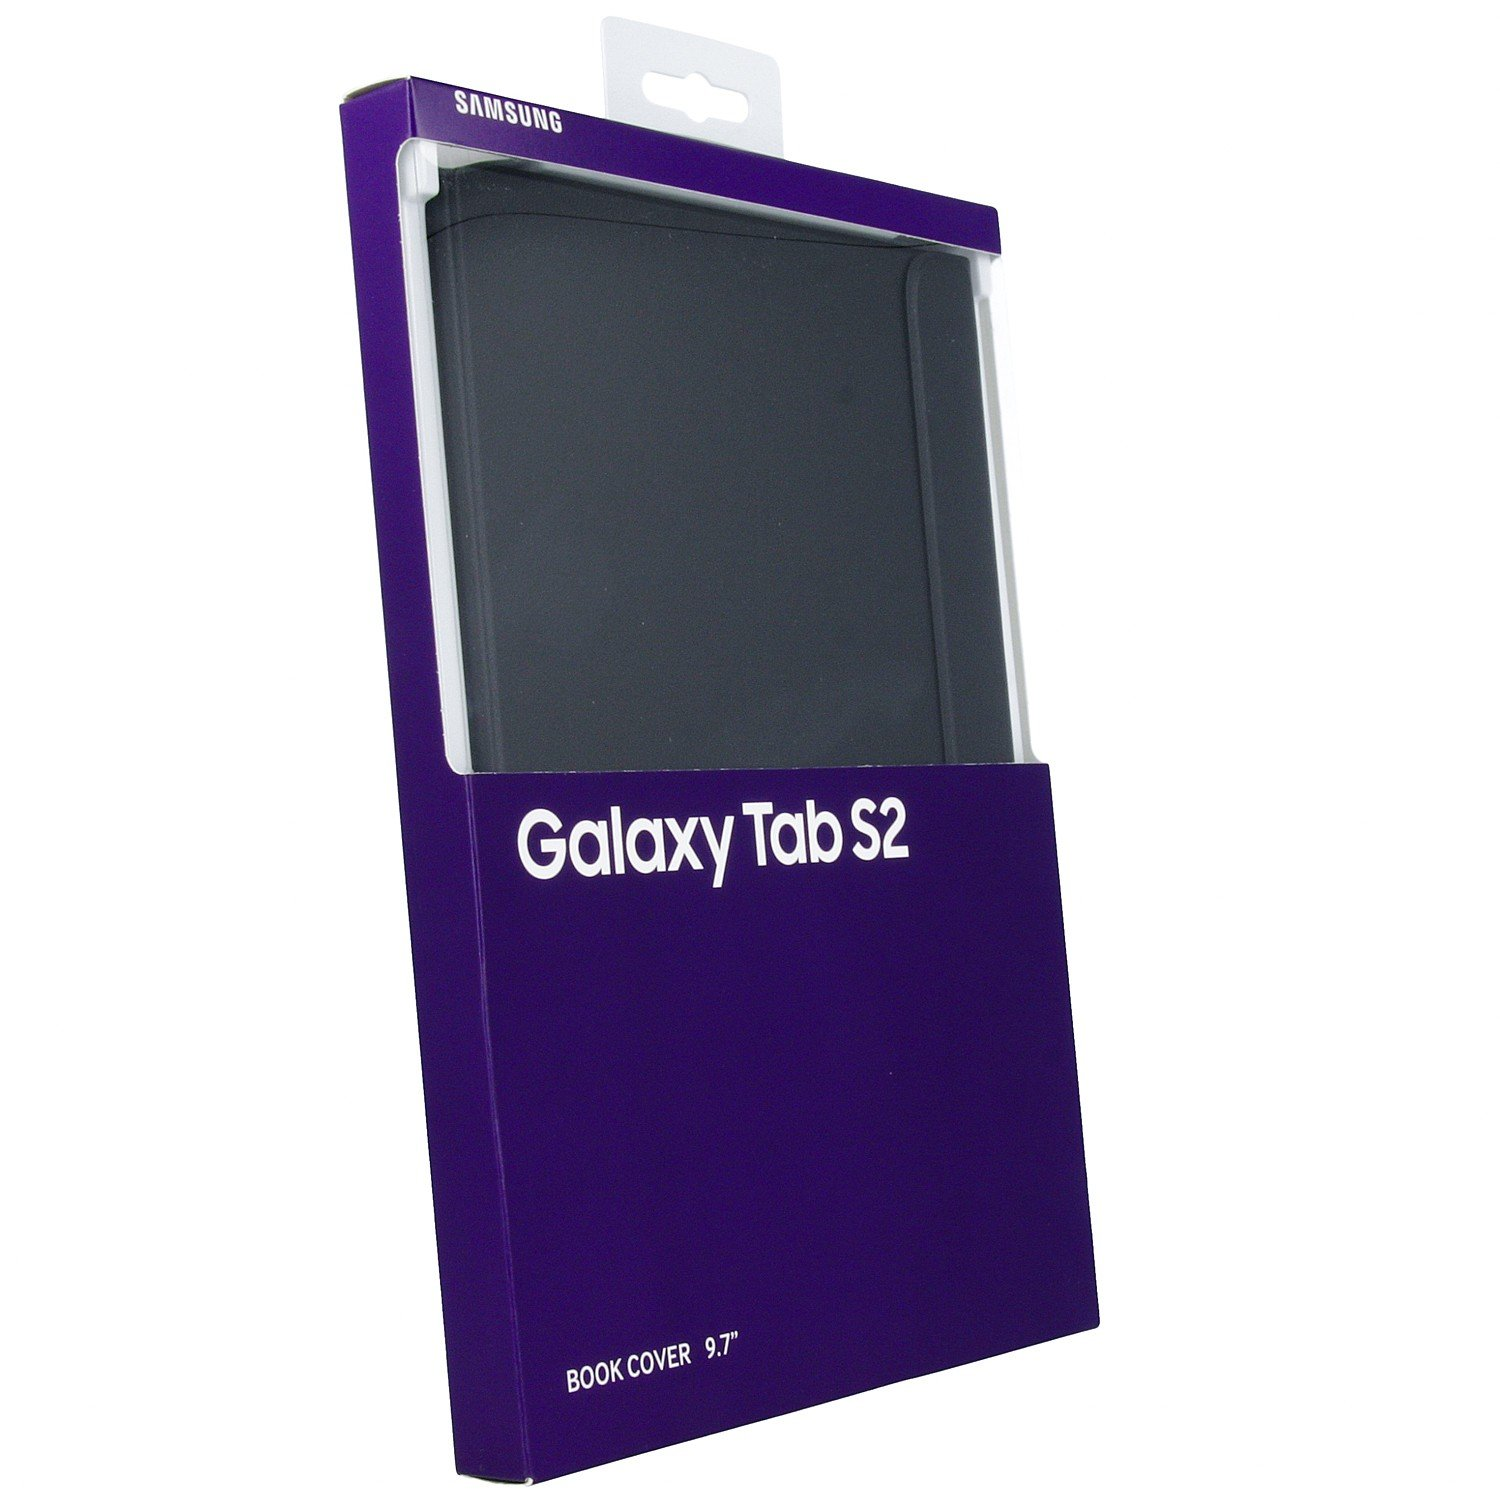 Business Book Cover Zwart ~ Samsung galaxy tab s book cover zwart ef bt pb